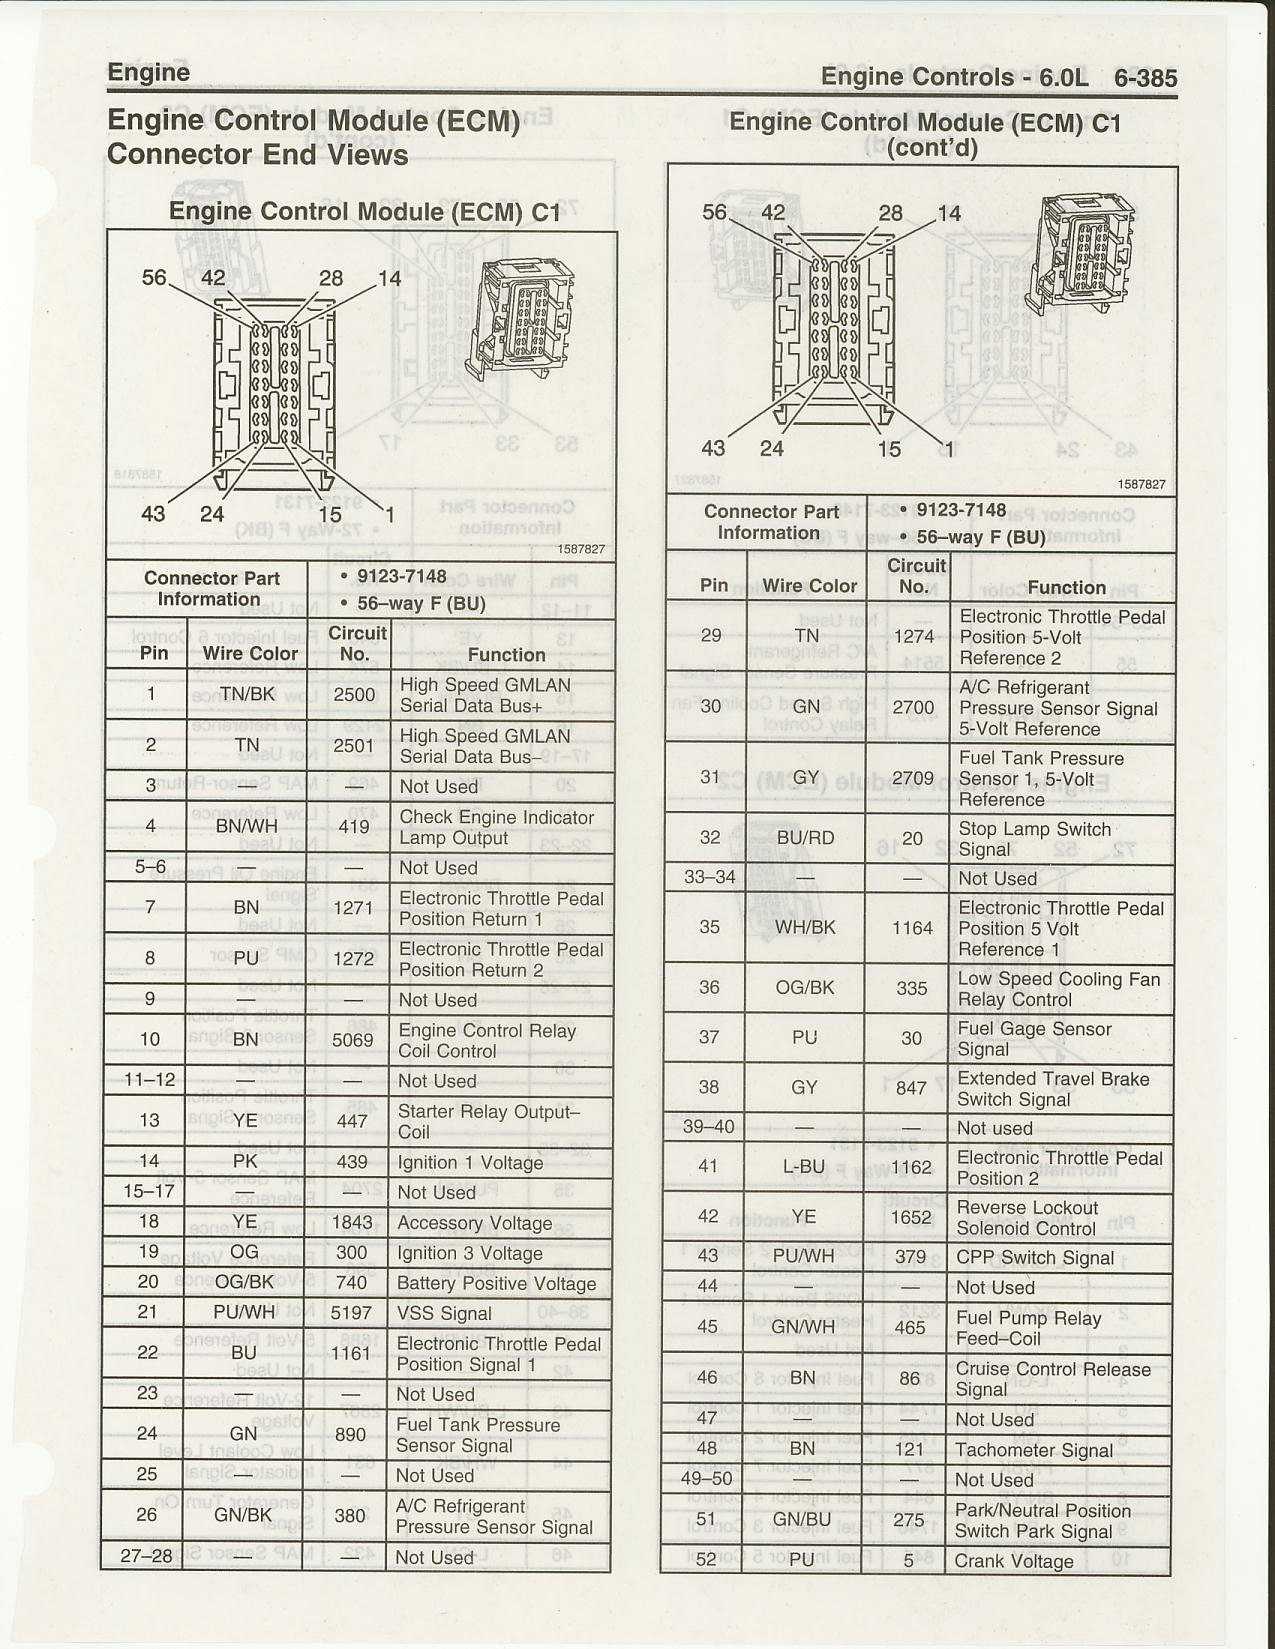 Pinouts And Wiring Diagrams Page 4 Ls1tech Camaro Firebird 53 Buick Diagram Free Picture Schematic Ls2 C1